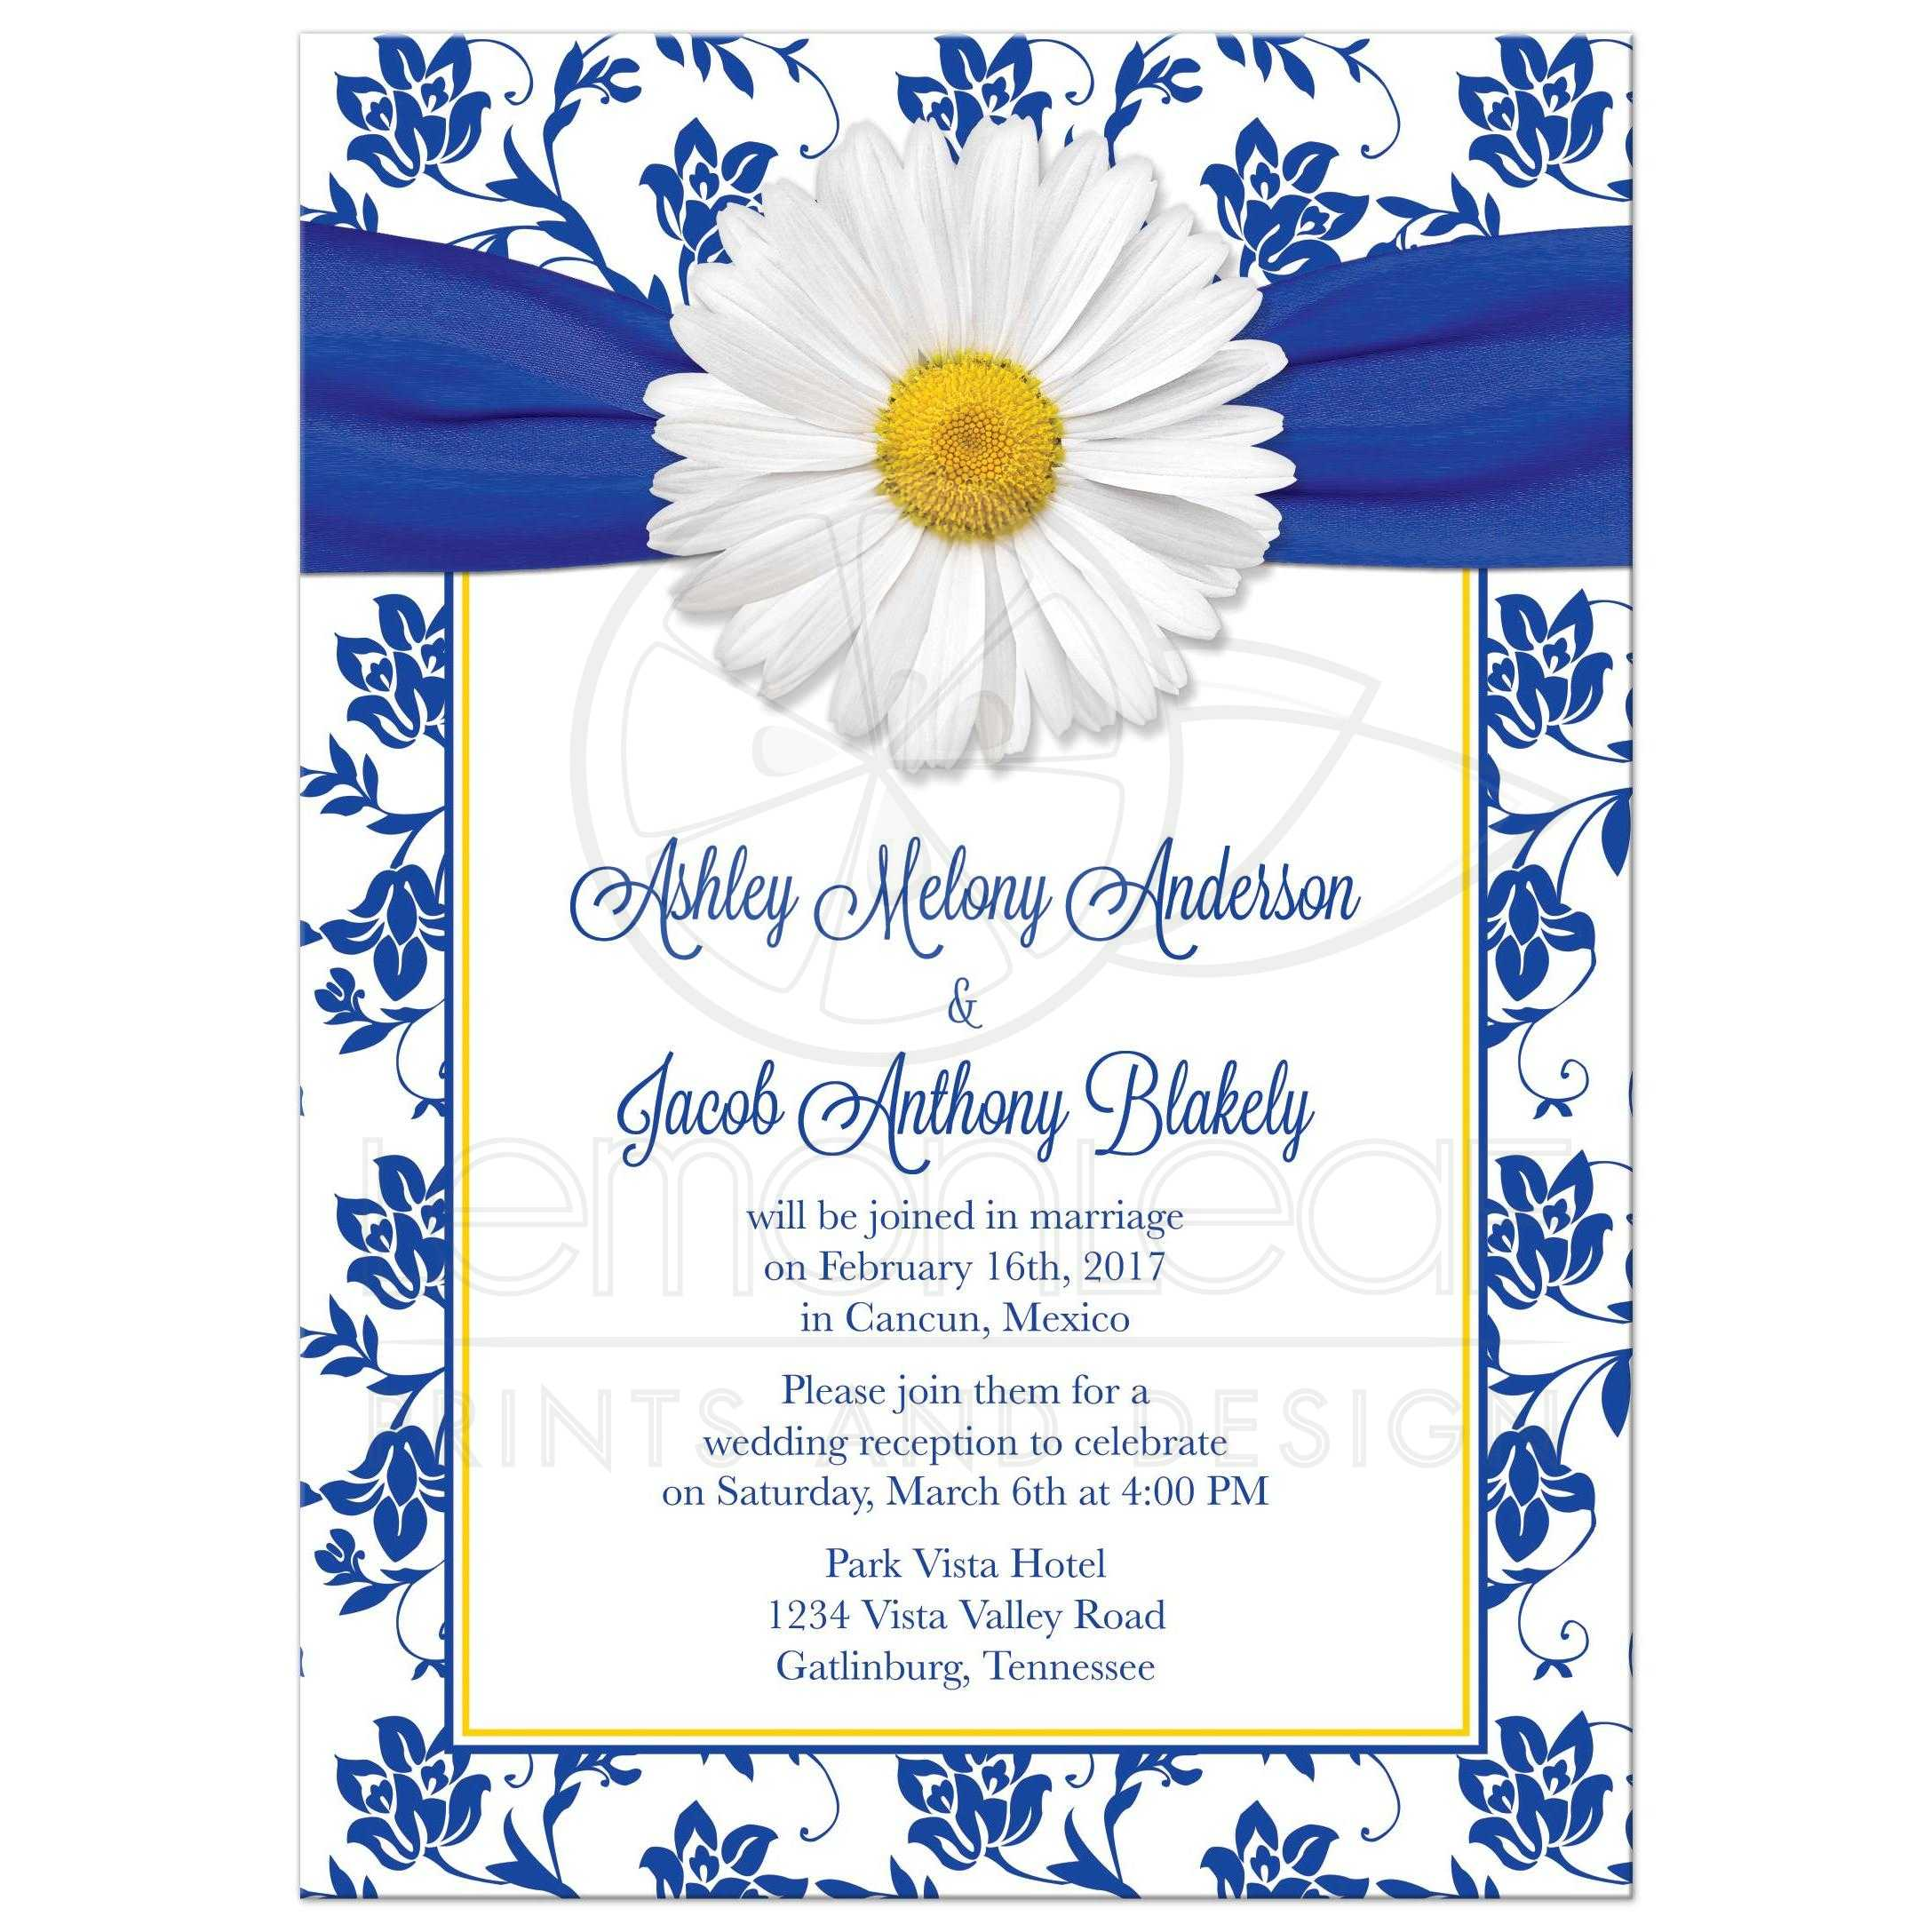 Personalized White Daisy Royal Blue Damask Floral Post Wedding Reception Only Invitations Front: Daisy Do It Yourself Wedding Invitations At Websimilar.org